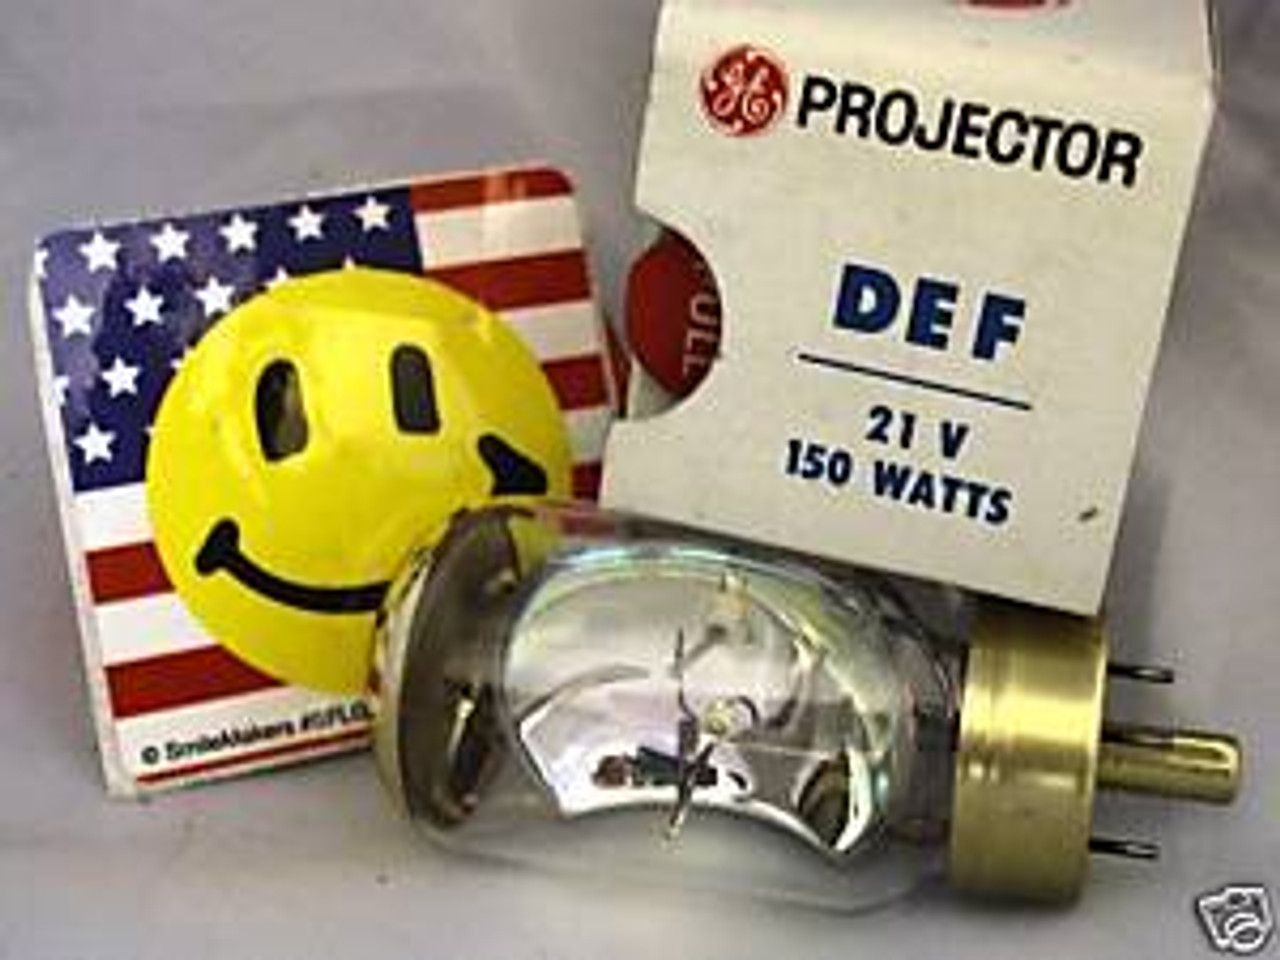 Revere Camera Co. 718 8mm Projector Replacement Lamp Bulb  - DEF